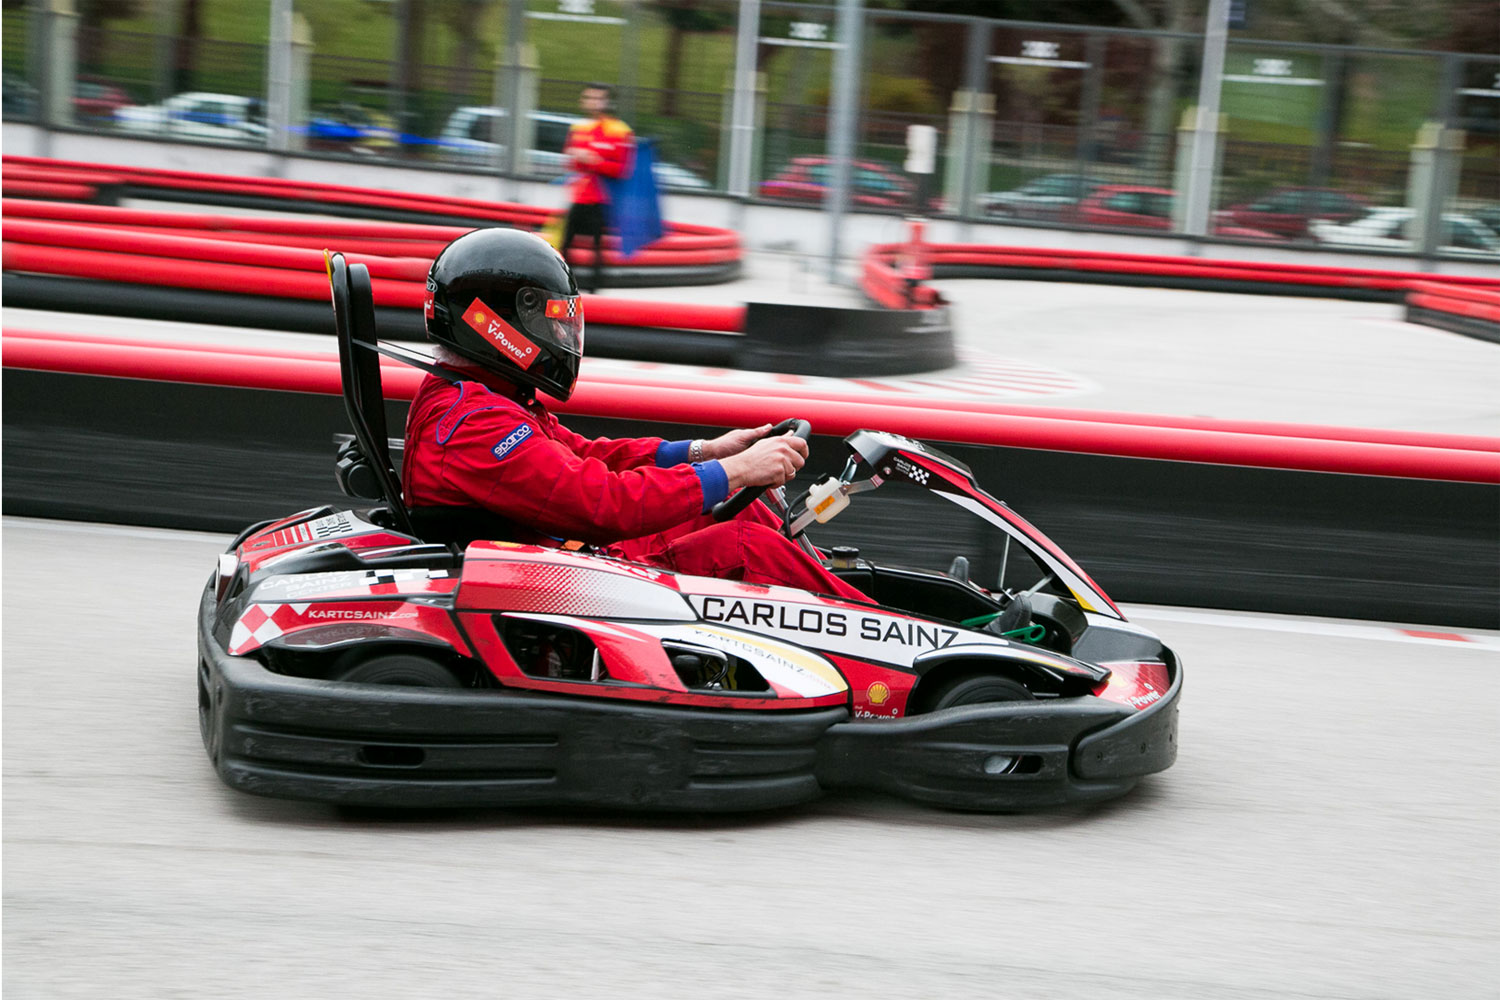 Go-kart Racing Package (1 person)